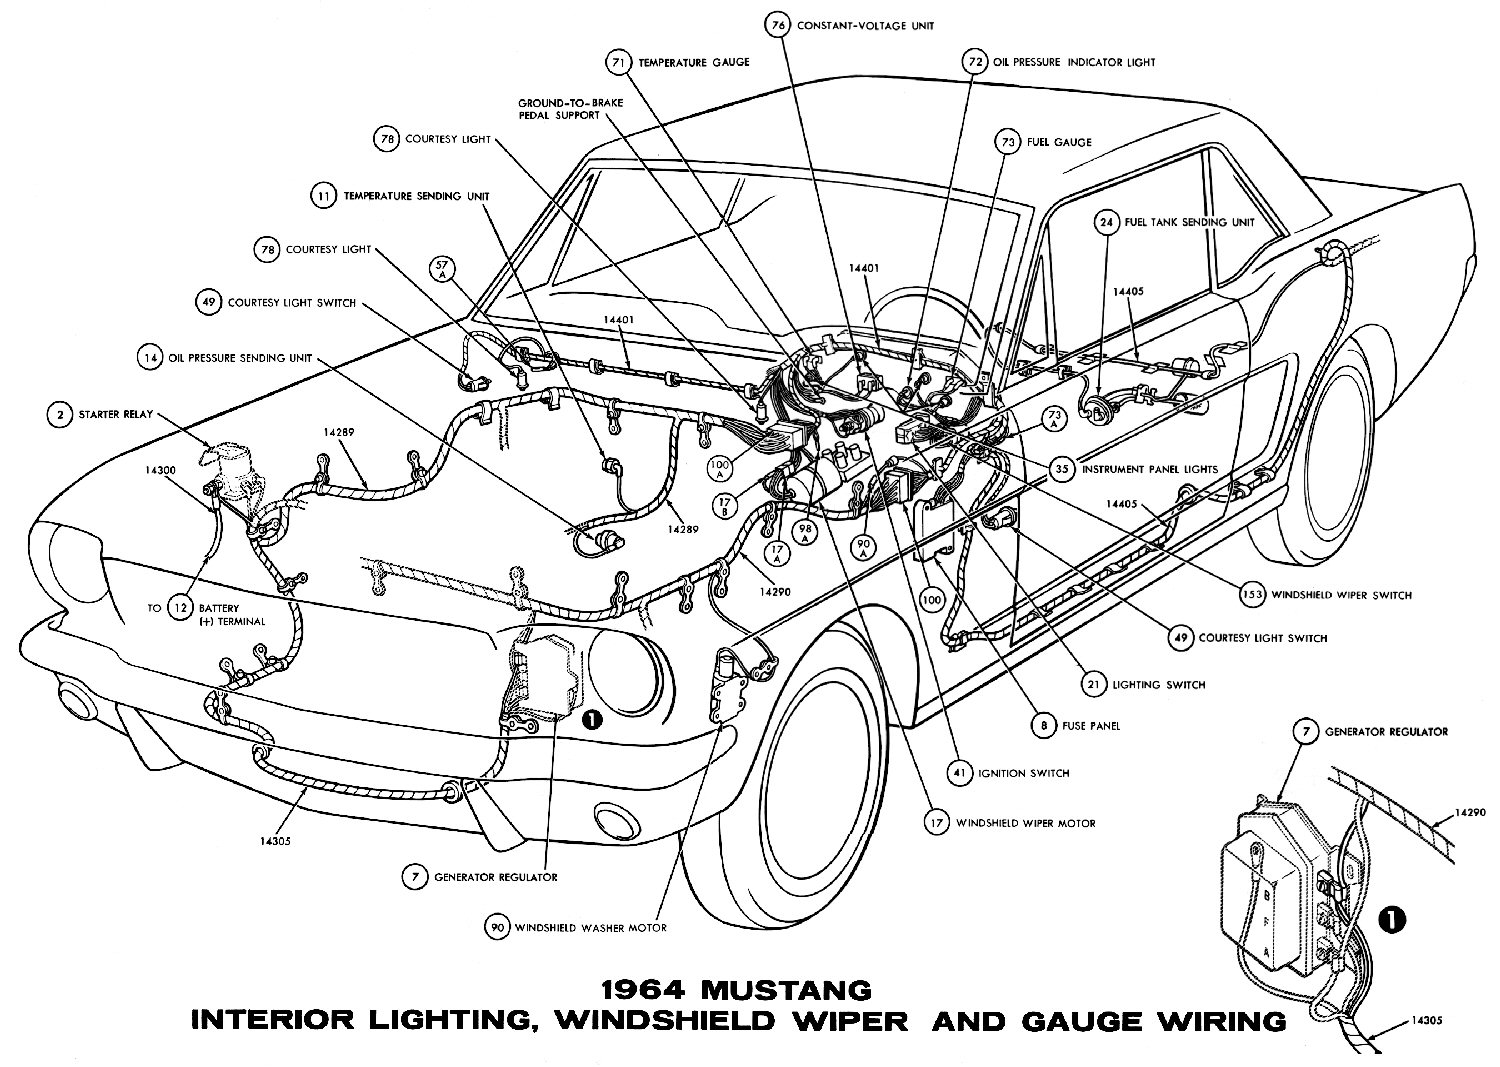 car wiring diagram program for stereo kenwood parts drawing at getdrawings free personal